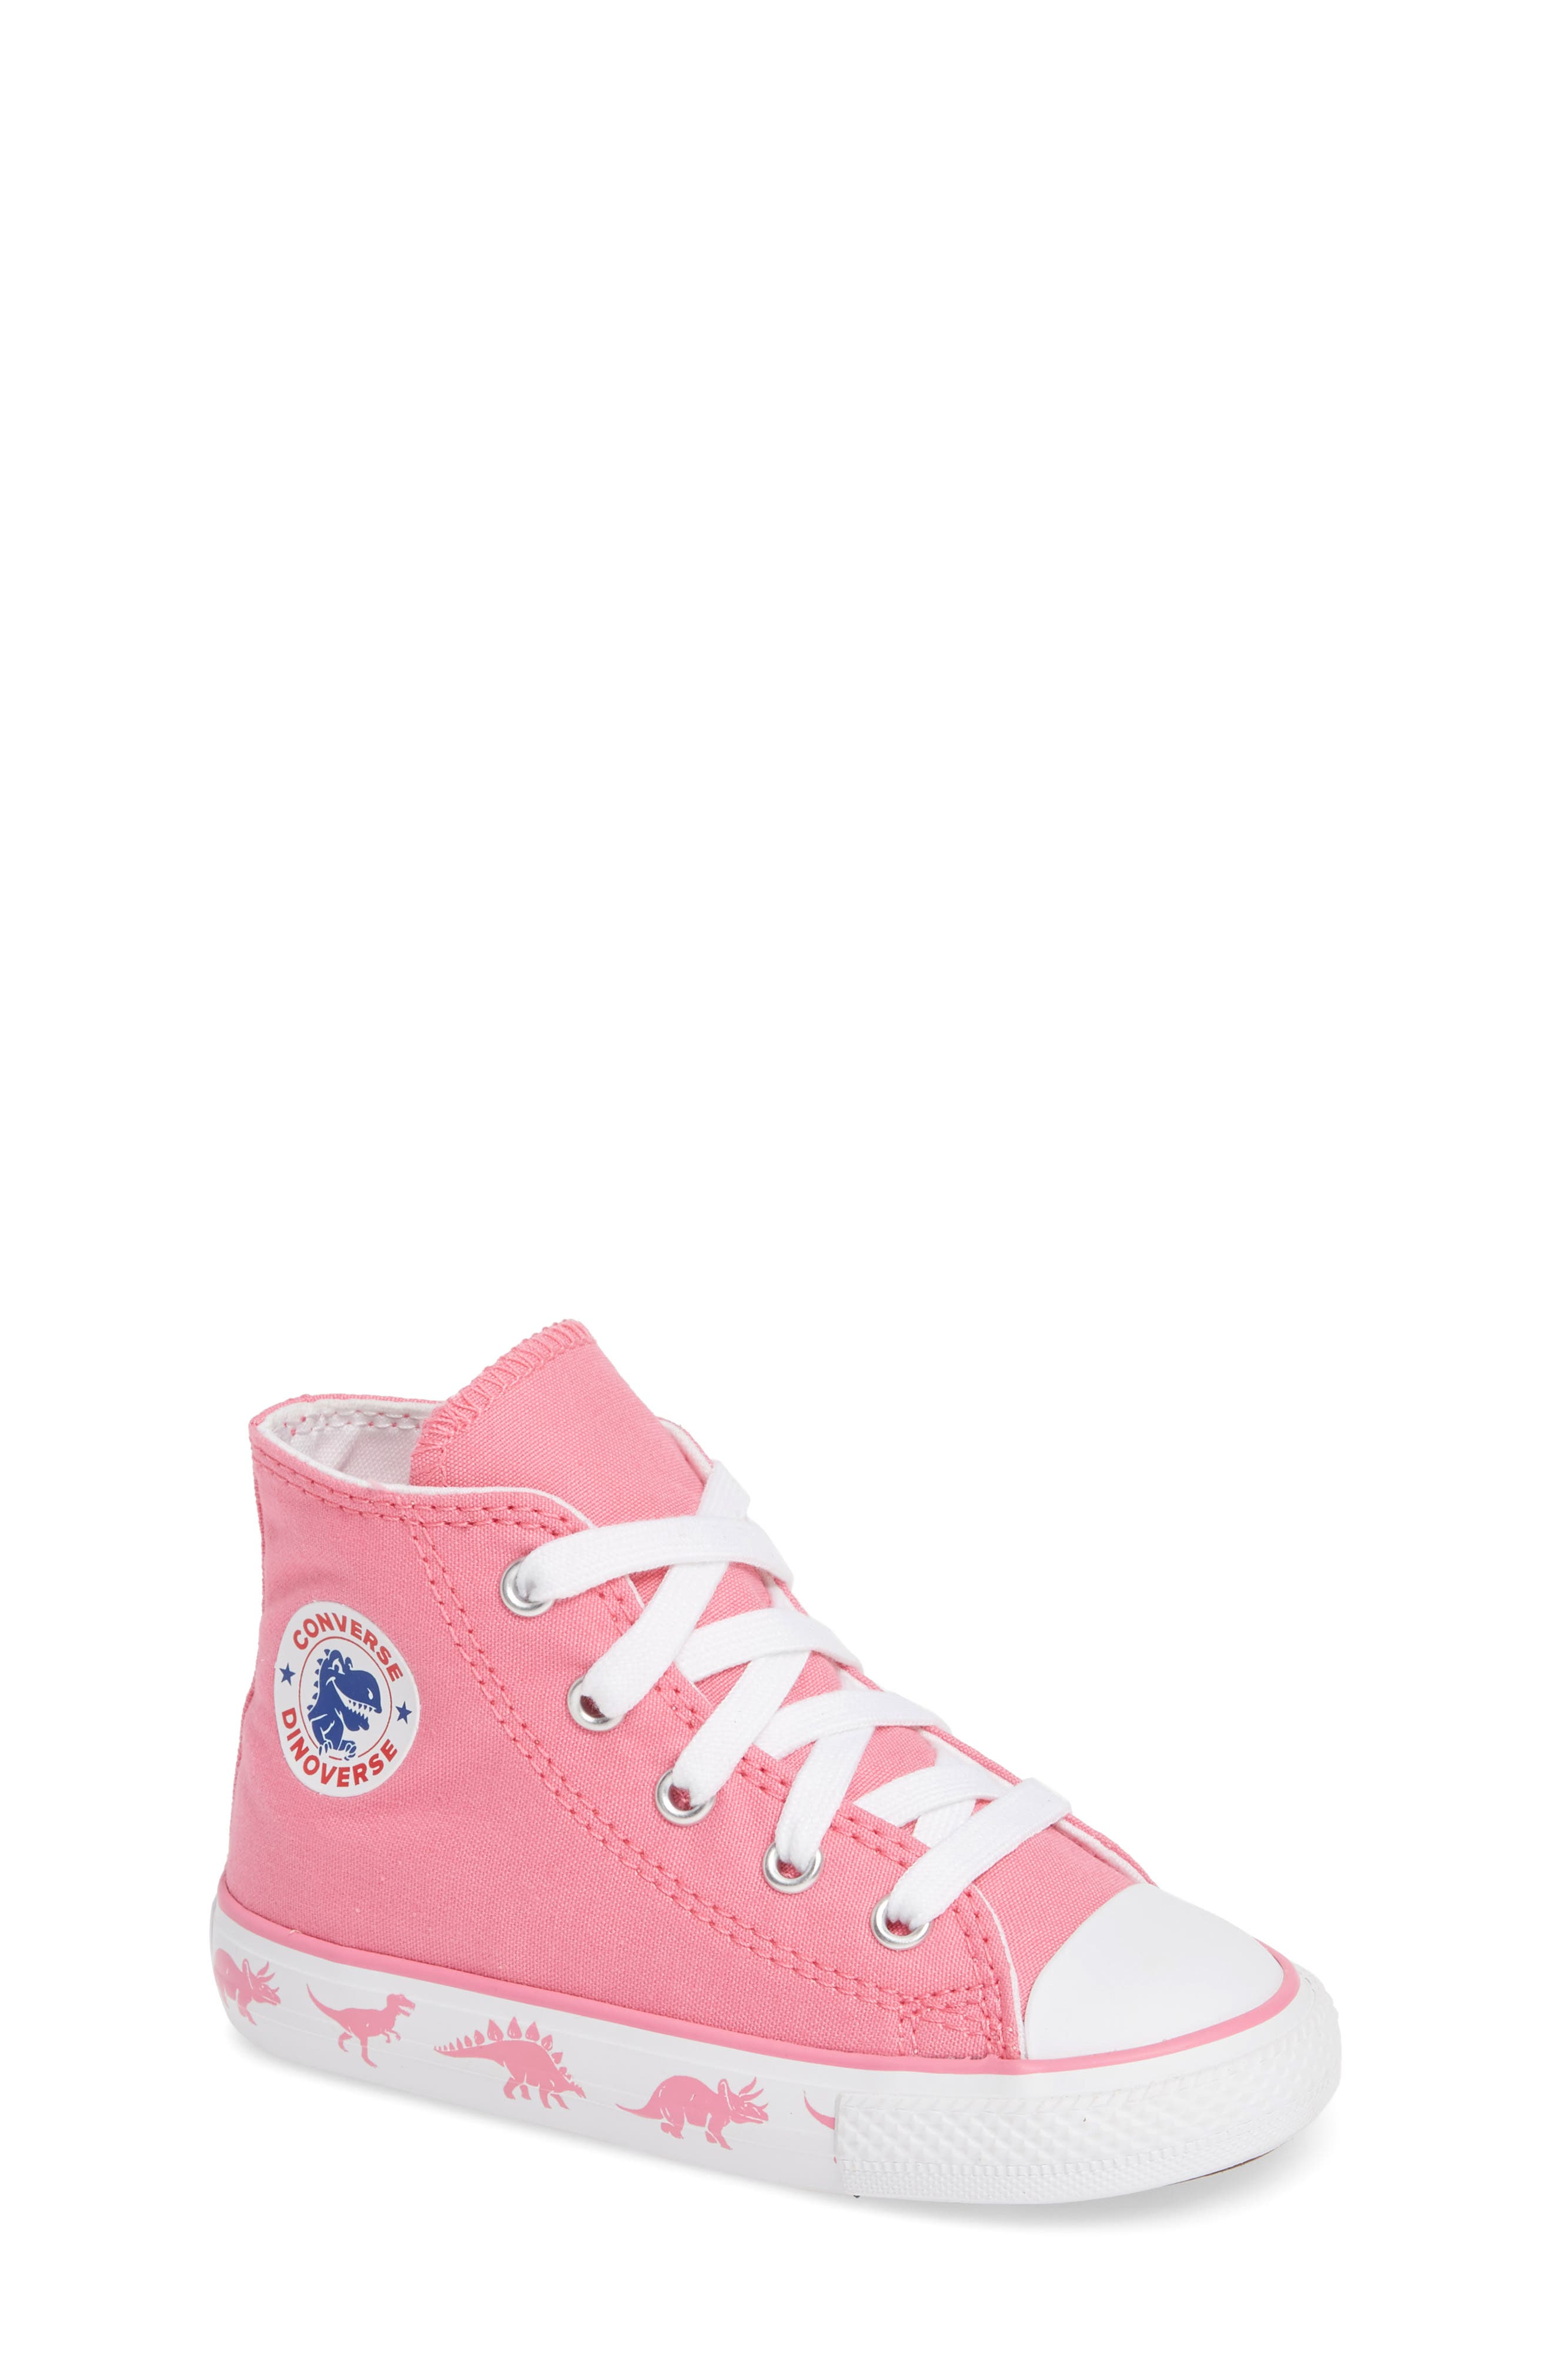 09702ec4ed12 ... germany converse chuck taylor all star dino high top sneaker baby  walker toddler little kid big